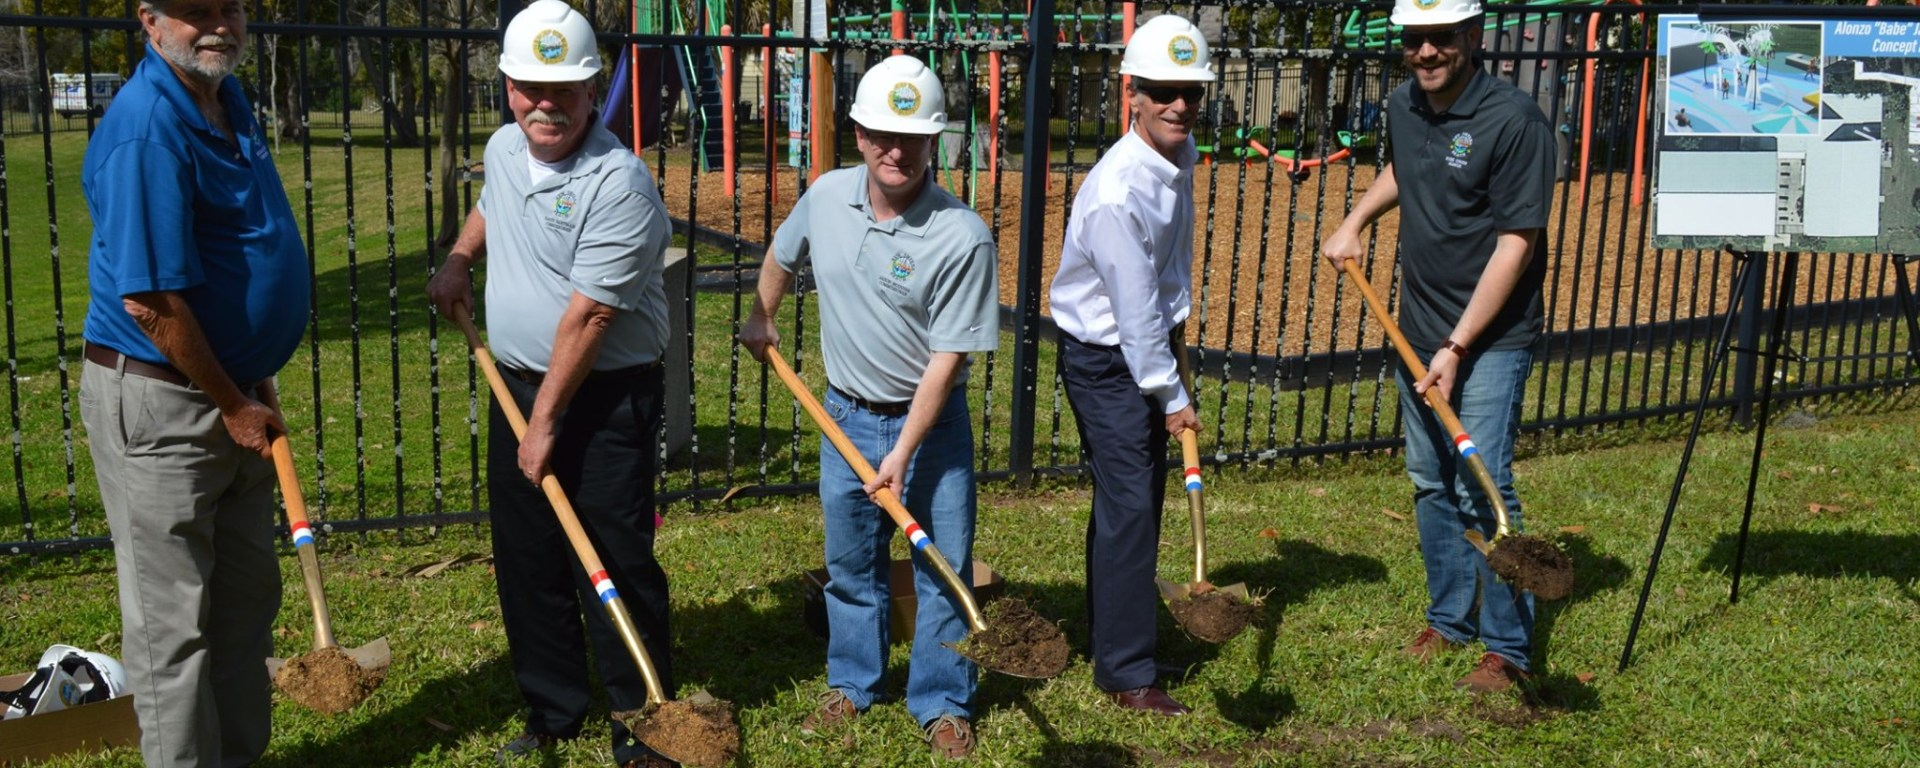 men and women with hard hats and shovels for community groundbreaking ceremony